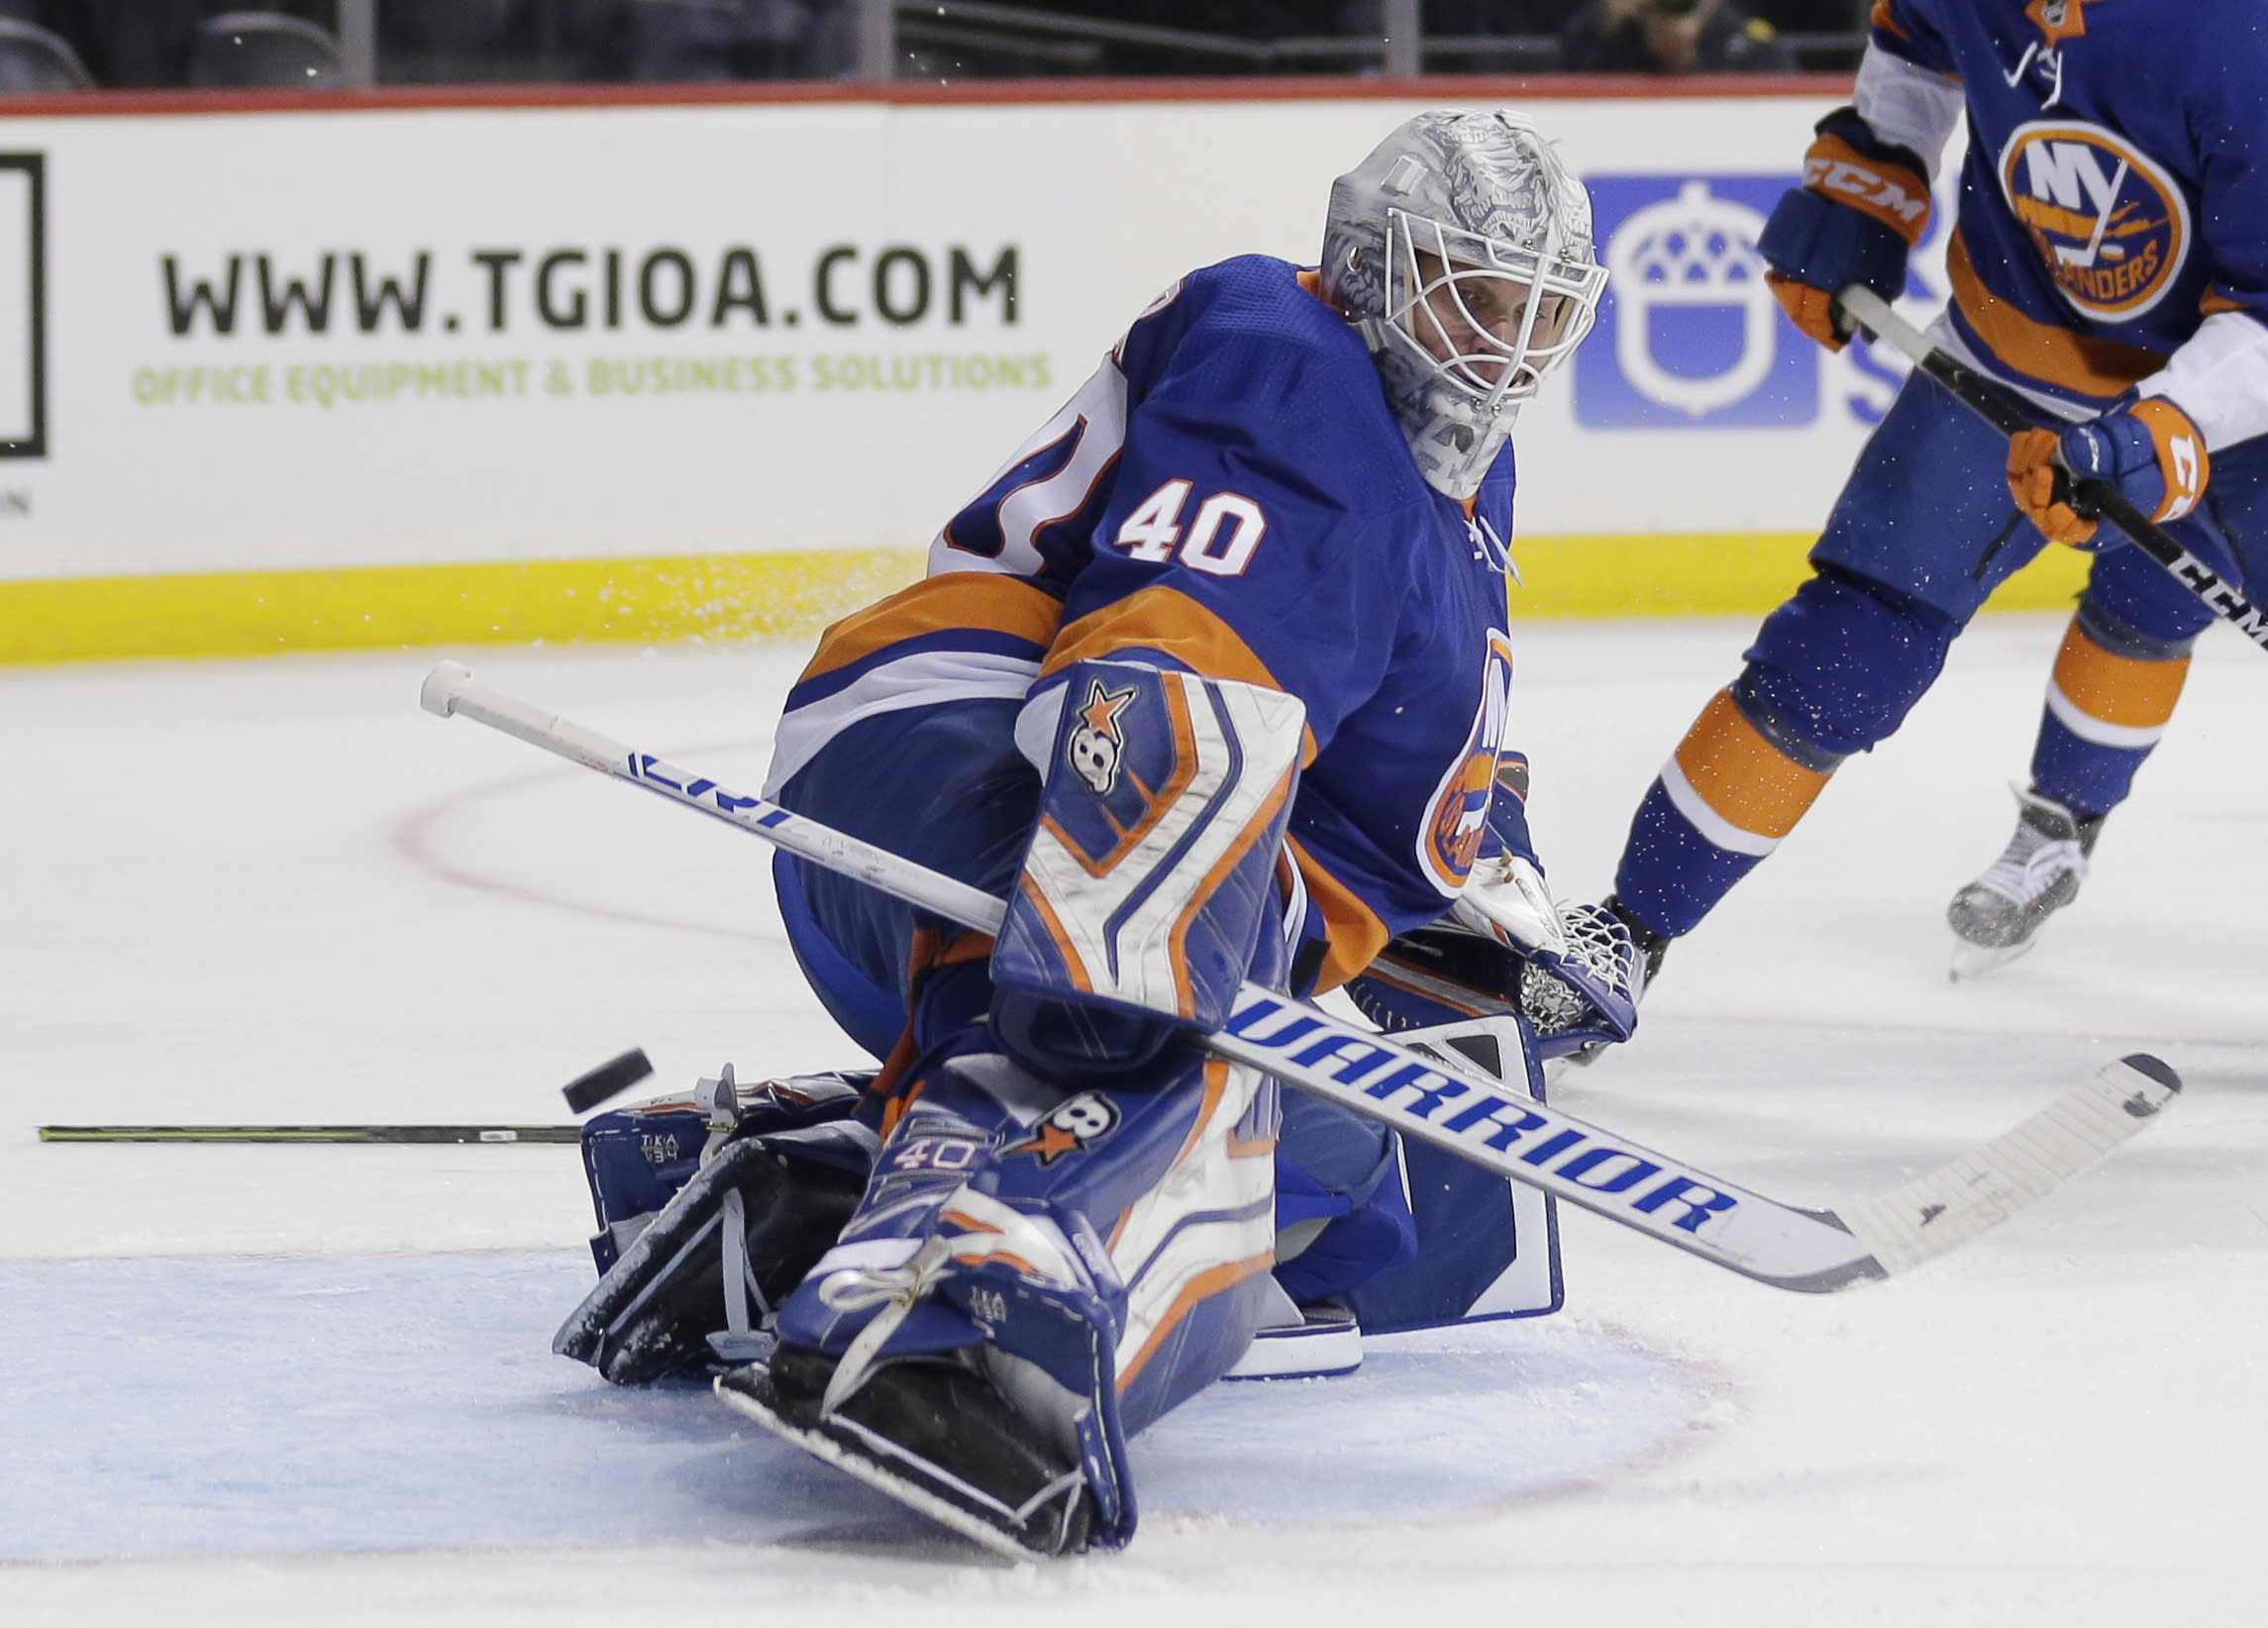 Robin Lehner posts shutout in first game since revealing addiction, bipolar diagnosis